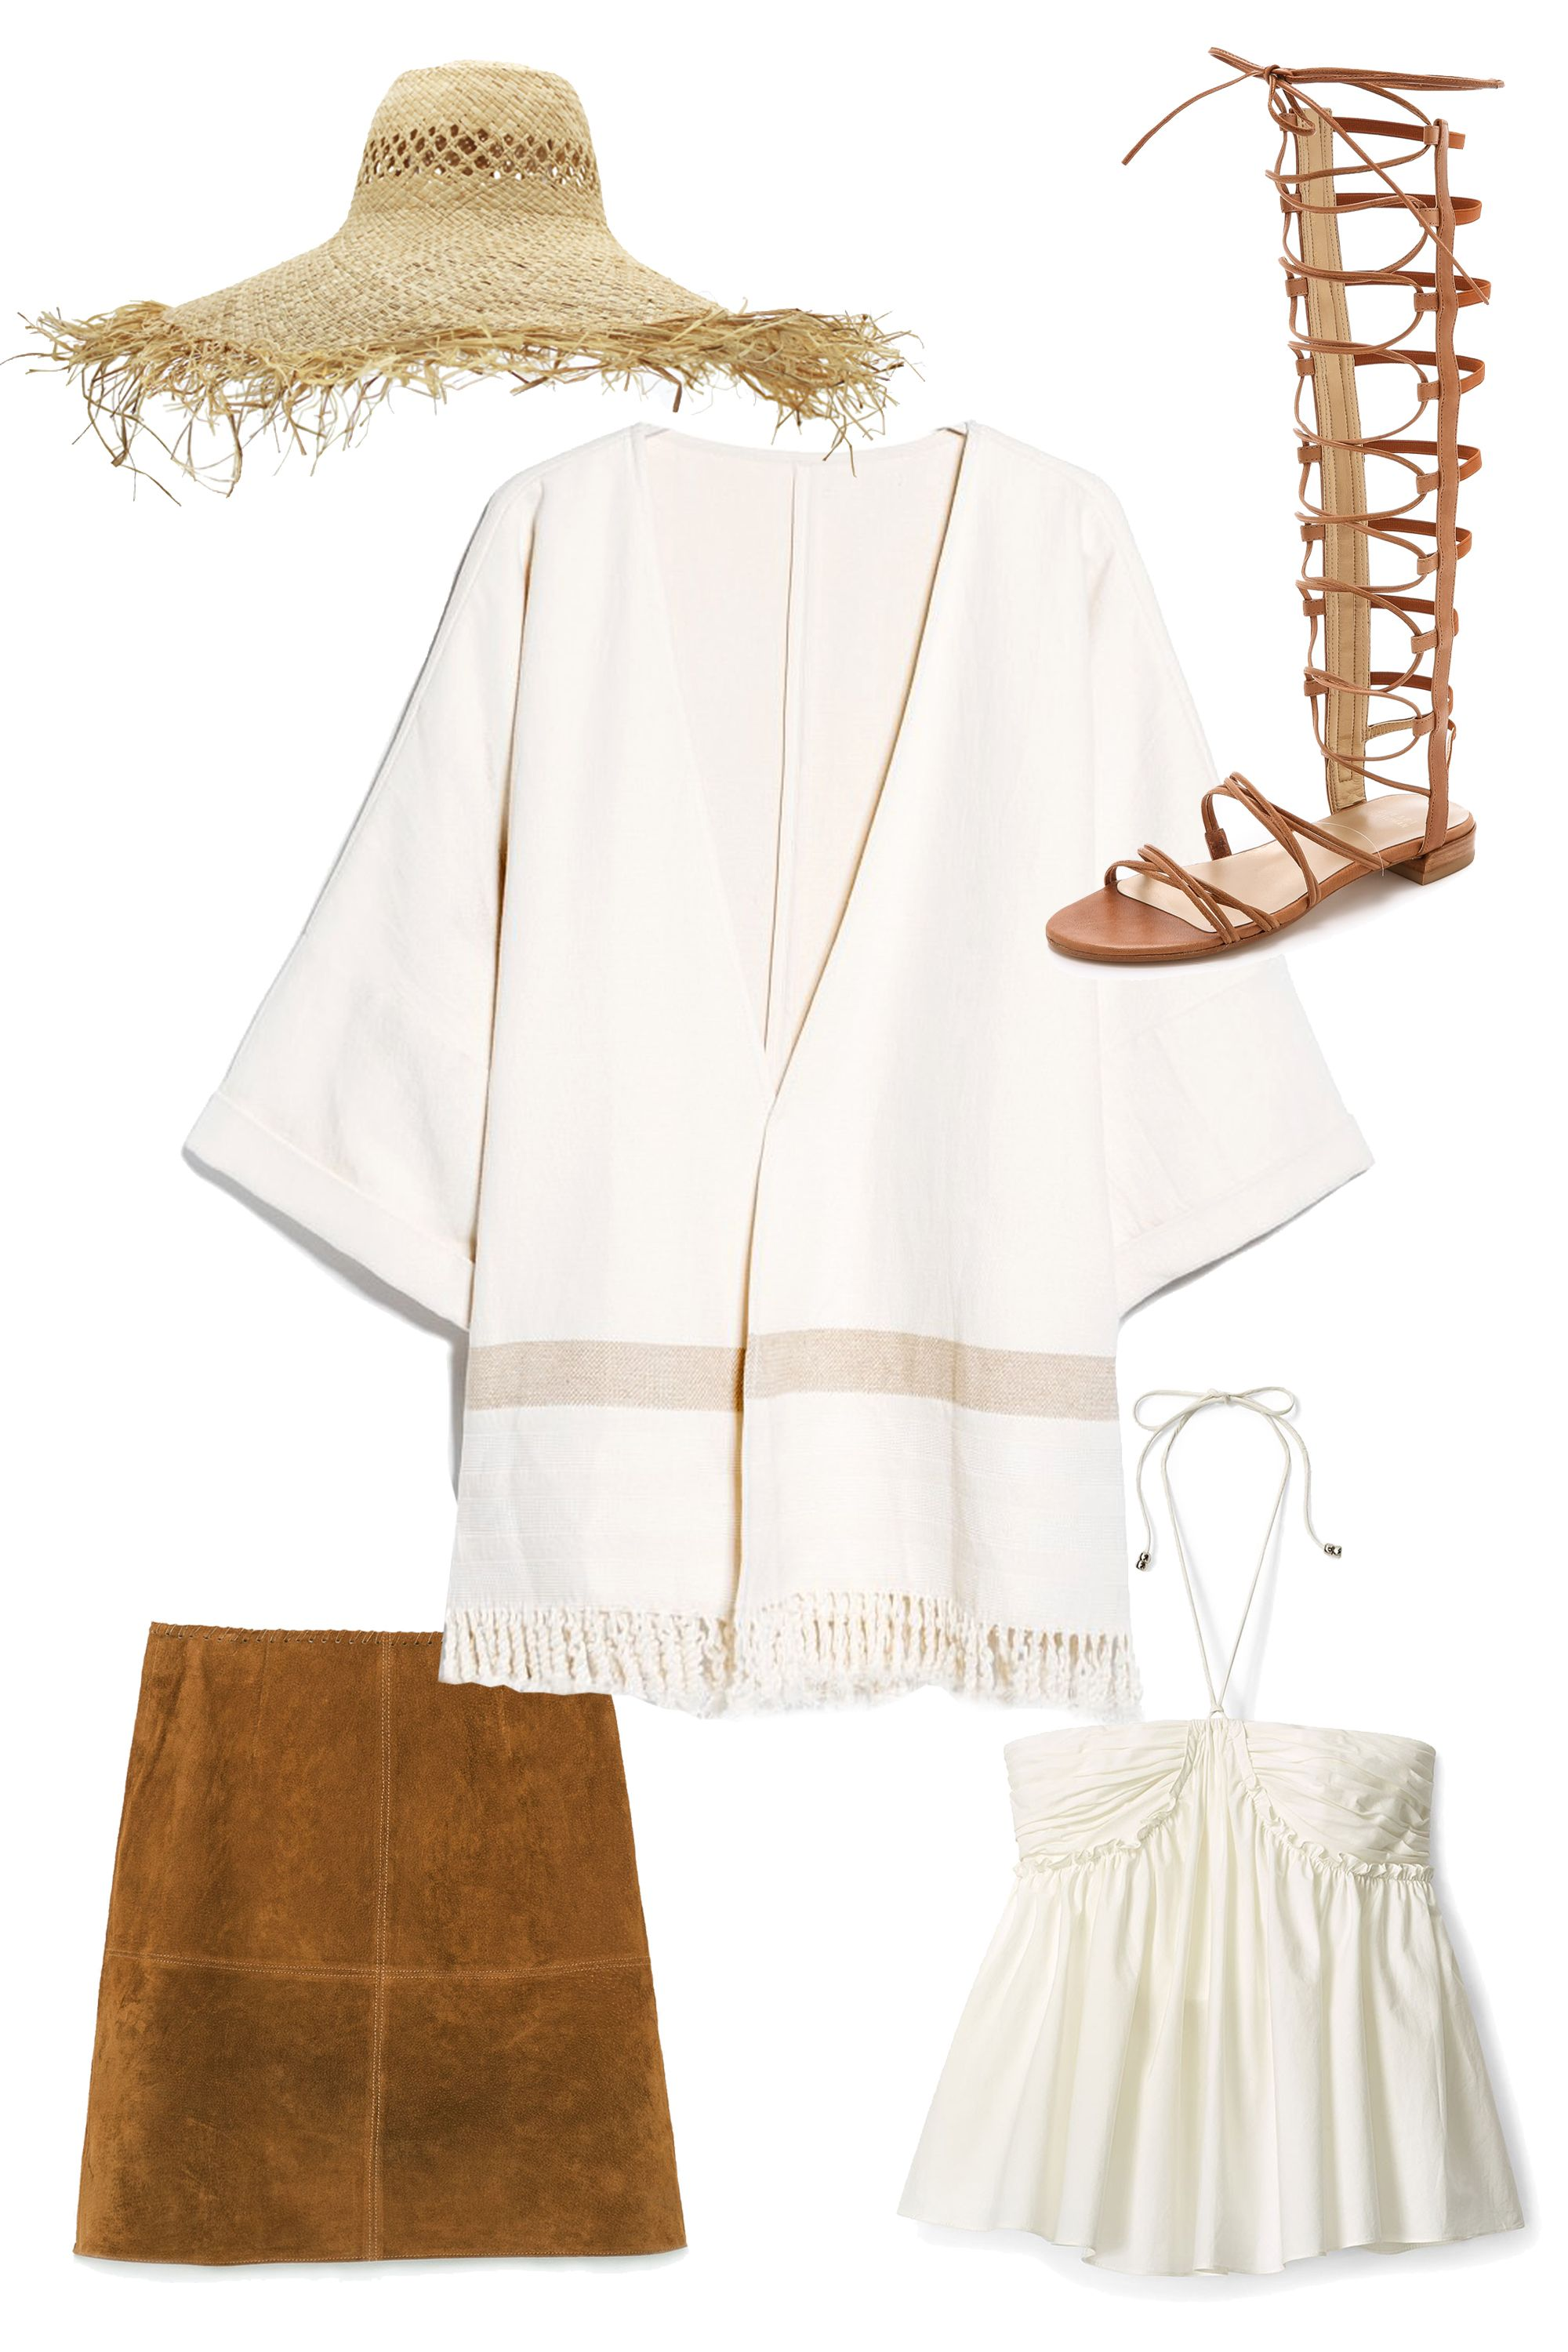 "<strong>Mango Fringe Linen-Blend Poncho, $120; <a href=""http://shop.mango.com/US/p0/women/clothing/fringe-linen-blend-poncho/?id=41059024_05&n=1&s=prendas.vestidosprendas&ident=0__0_1429807565416&ts=1429807565416"">mango.com</a></strong>  <em>Clockwise from top left:</em>  Eugenia Kim Delilah Hat, $425; <a href=""http://www.eugeniakim.com/delilah/#.VTkk17uj1bk"">eugeniakim.com</a>  Stuart Weitzman Sparta Sandals, $498; <a href=""http://www.shopbop.com/sparta-sandals-stuart-weitzman/vp/v=1/1530199201.htm?fm=search-viewall-shopbysize"">shopbop.com</a>  Rebecca Minkoff Kristina Top, $188; <a href=""http://www.rebeccaminkoff.com/kristina-top-chalk"">rebeccaminkoff.com</a>  Zara Seamed Skirt with Trimmed Waist, $80; <a href=""http://www.zara.com/us/en/woman/skirts/view-all/seamed-skirt-with-trimmed-waist-c719016p2484035.html"">zara.com</a>"